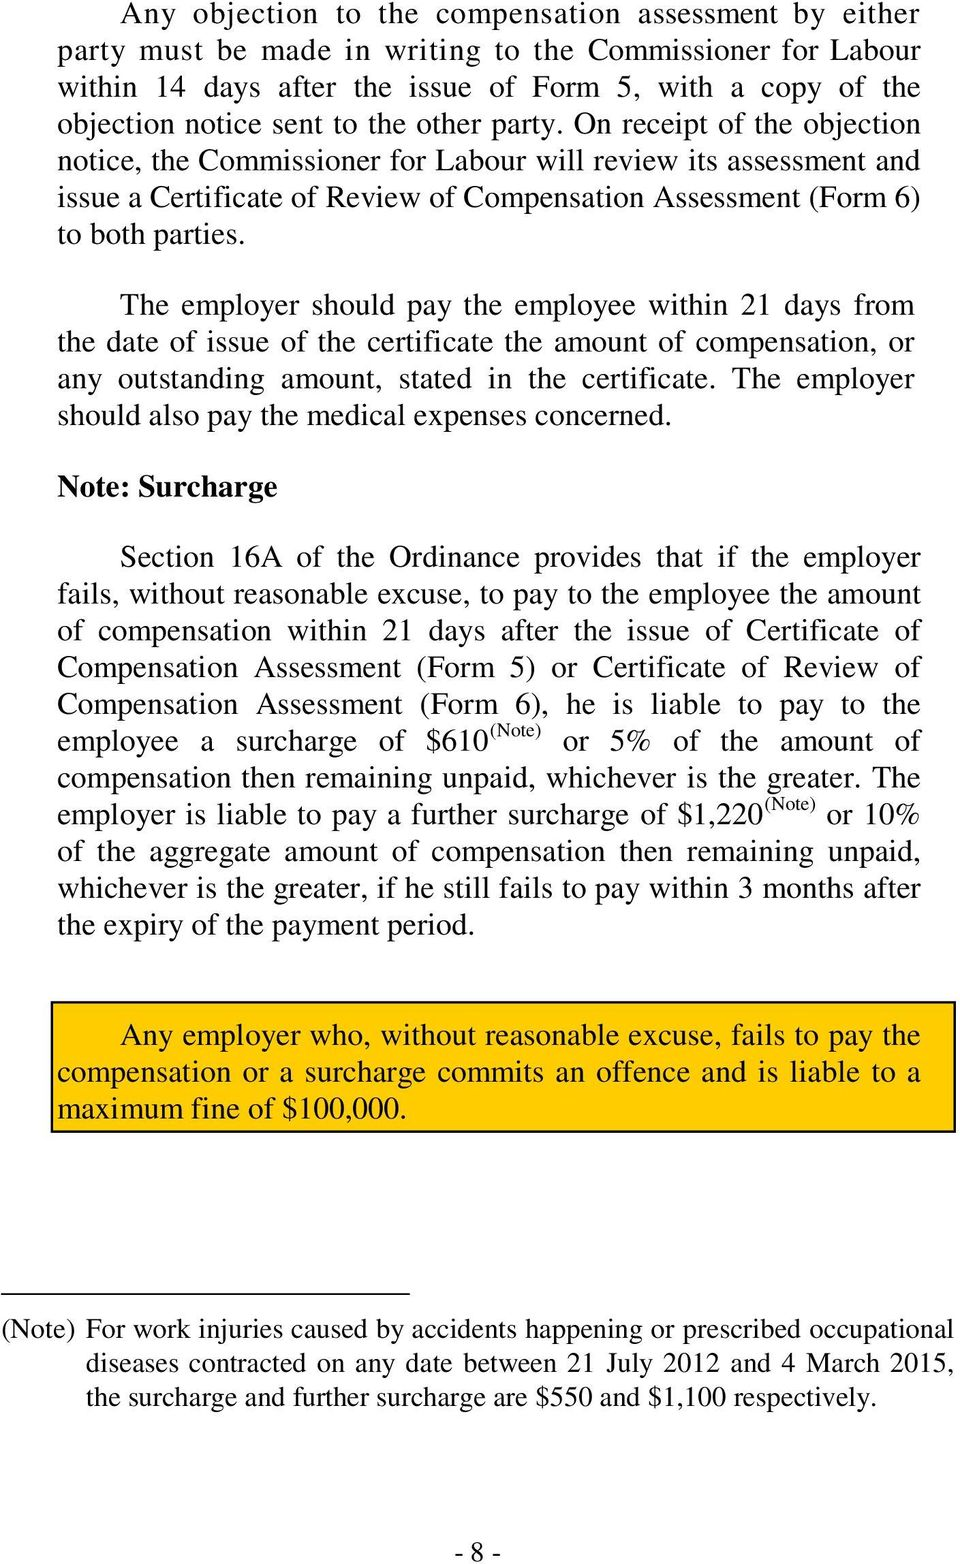 The employer should pay the employee within 21 days from the date of issue of the certificate the amount of compensation, or any outstanding amount, stated in the certificate.